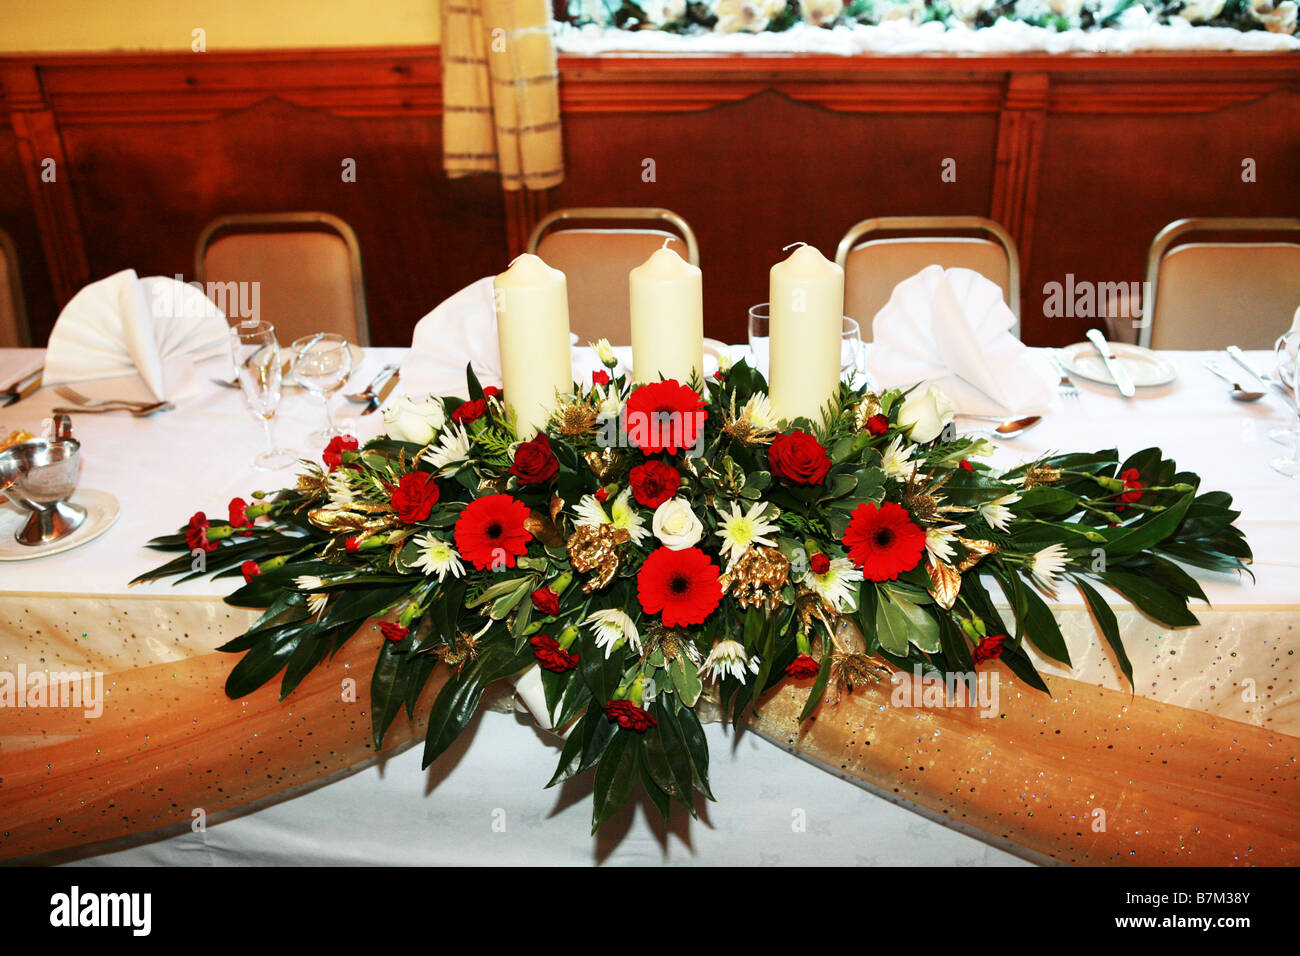 Floral Top Table Flower Display Centre Piece At A UK Wedding Reception With Festive Winter Xmas Colours Flowers